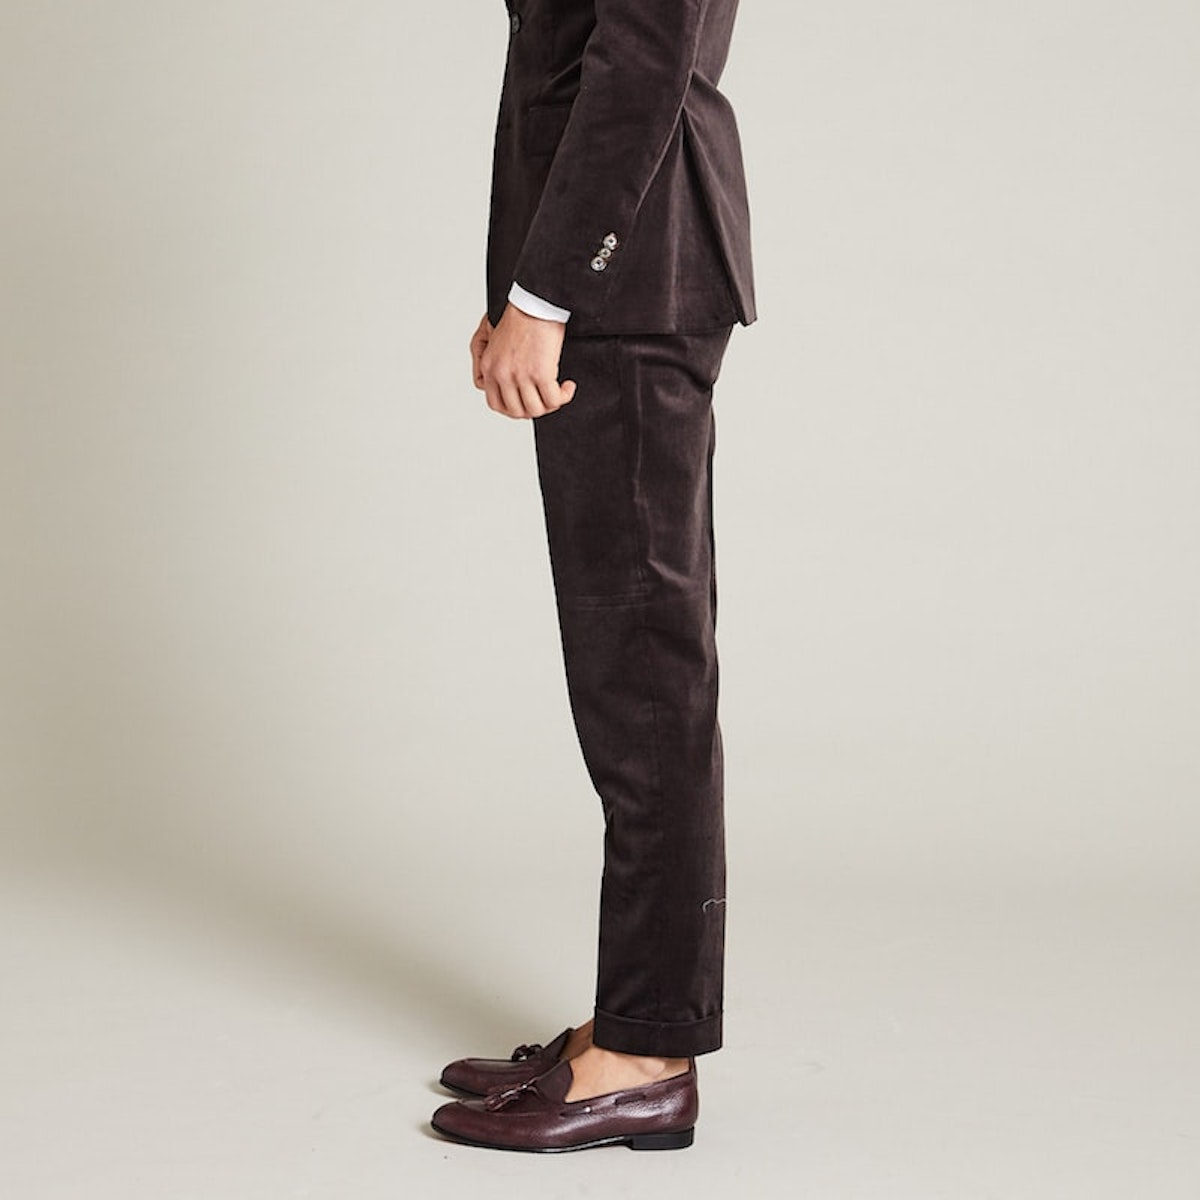 InStitchu Collection The Bates Brown Corduroy Pants